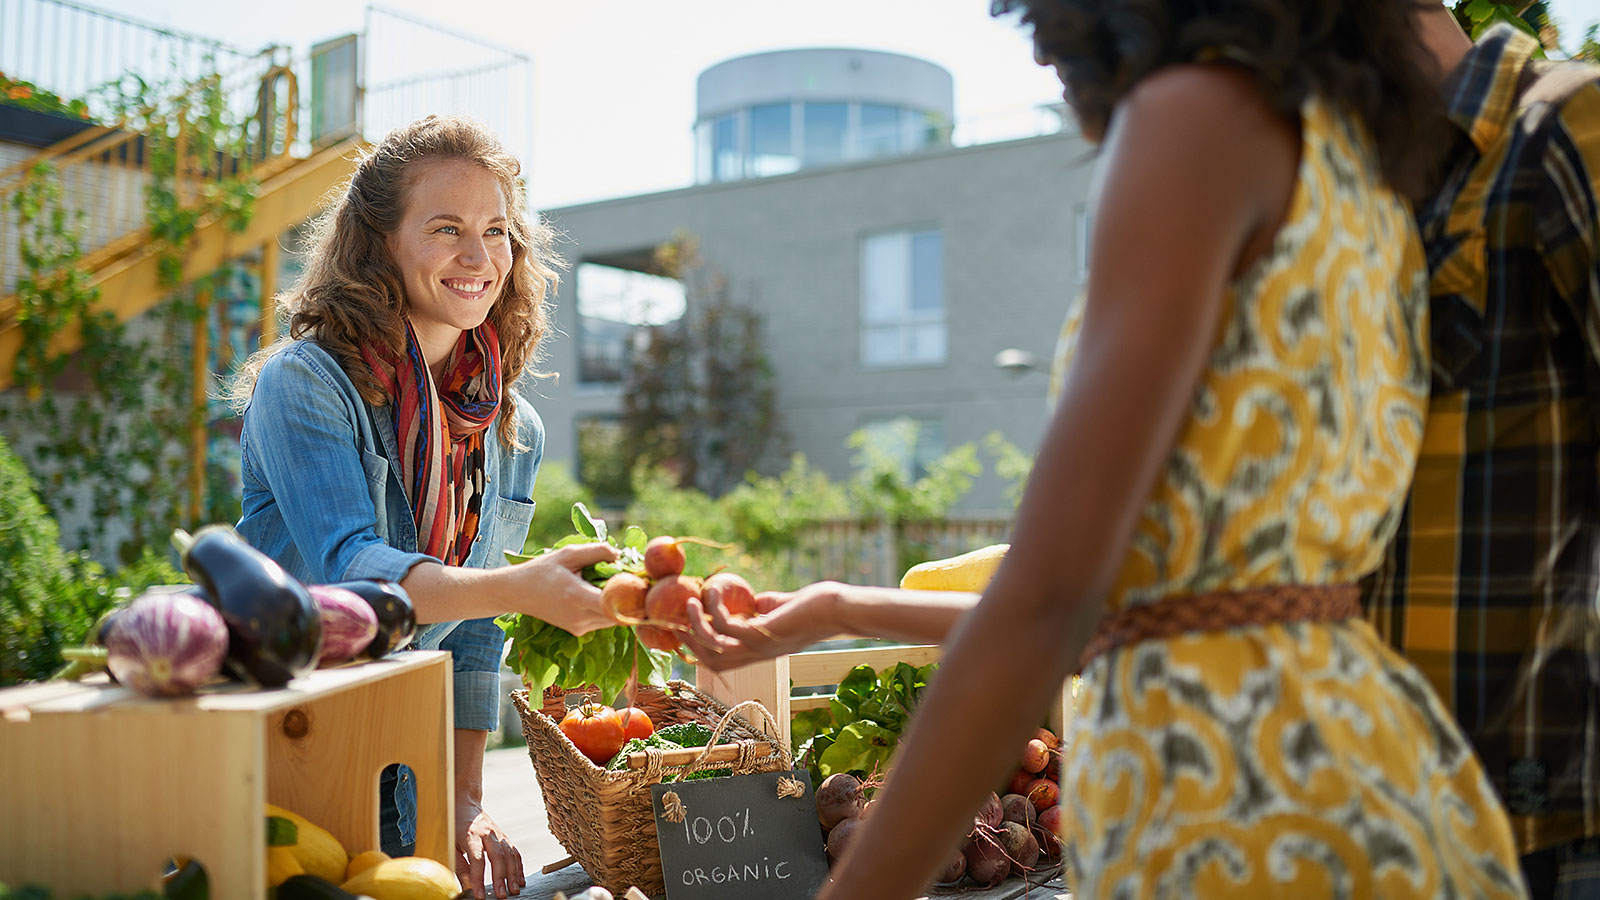 7 tips for becoming an ethical shopper